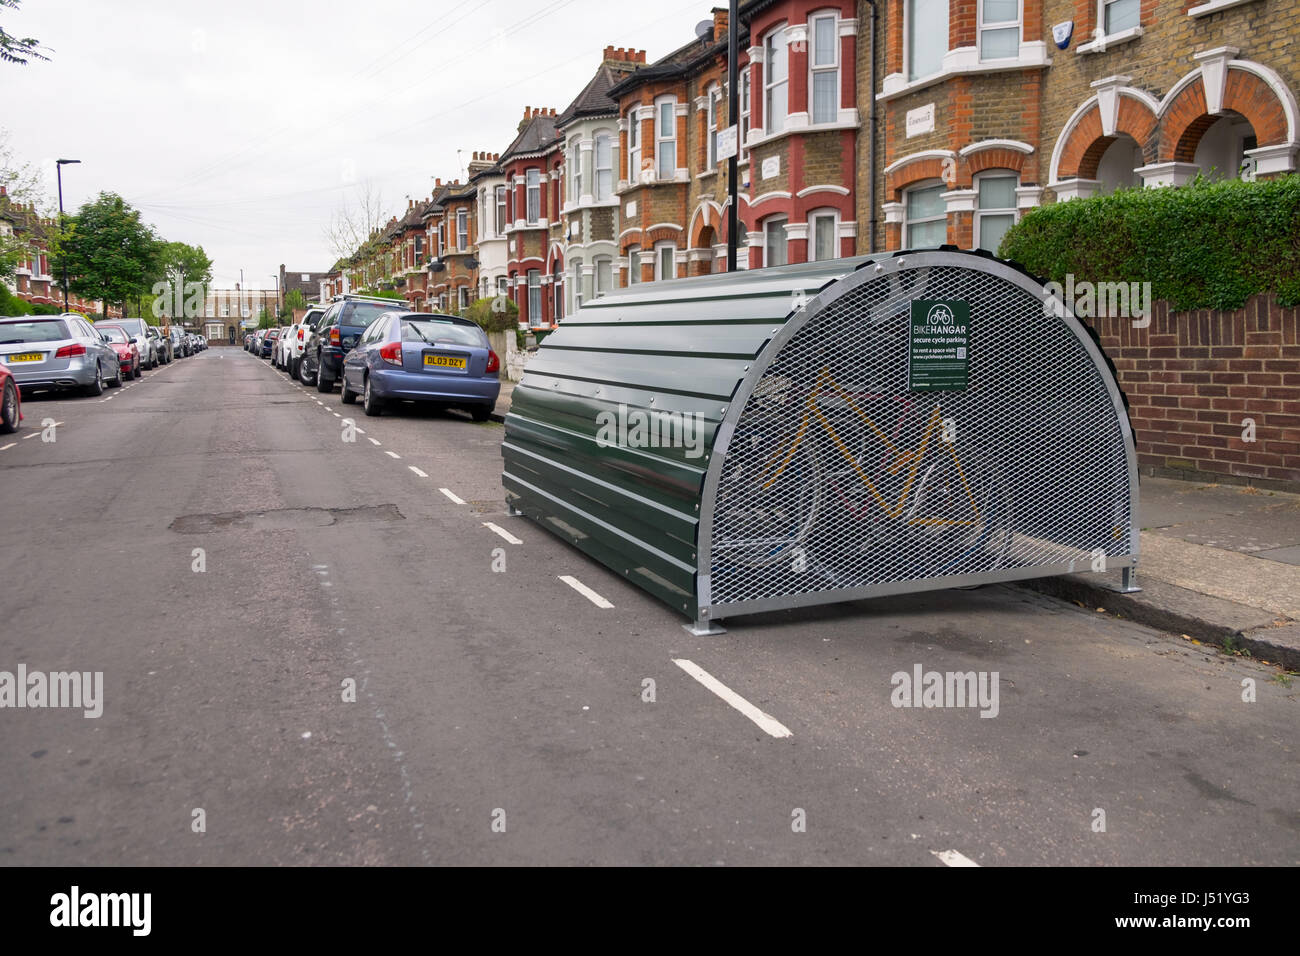 Bikehangar situated on a public road secure cycle parking on a uk urban london street - Stock Image